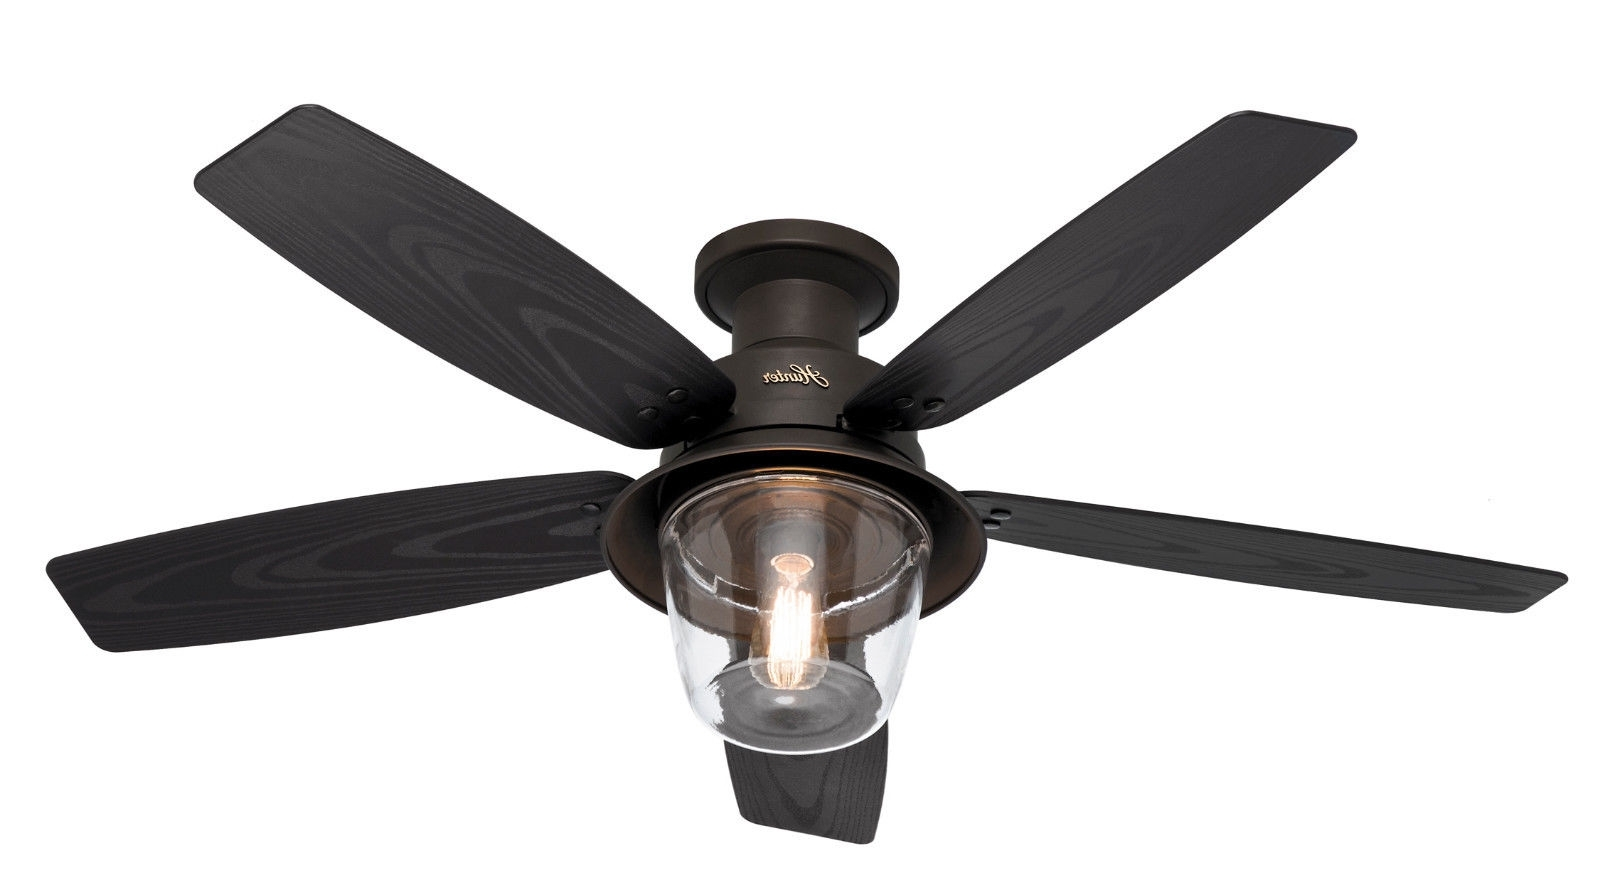 Favorite Ceiling Fan: Breathtaking Black Industrial Ceiling Fan Ideas With Industrial Outdoor Ceiling Fans With Light (View 7 of 20)